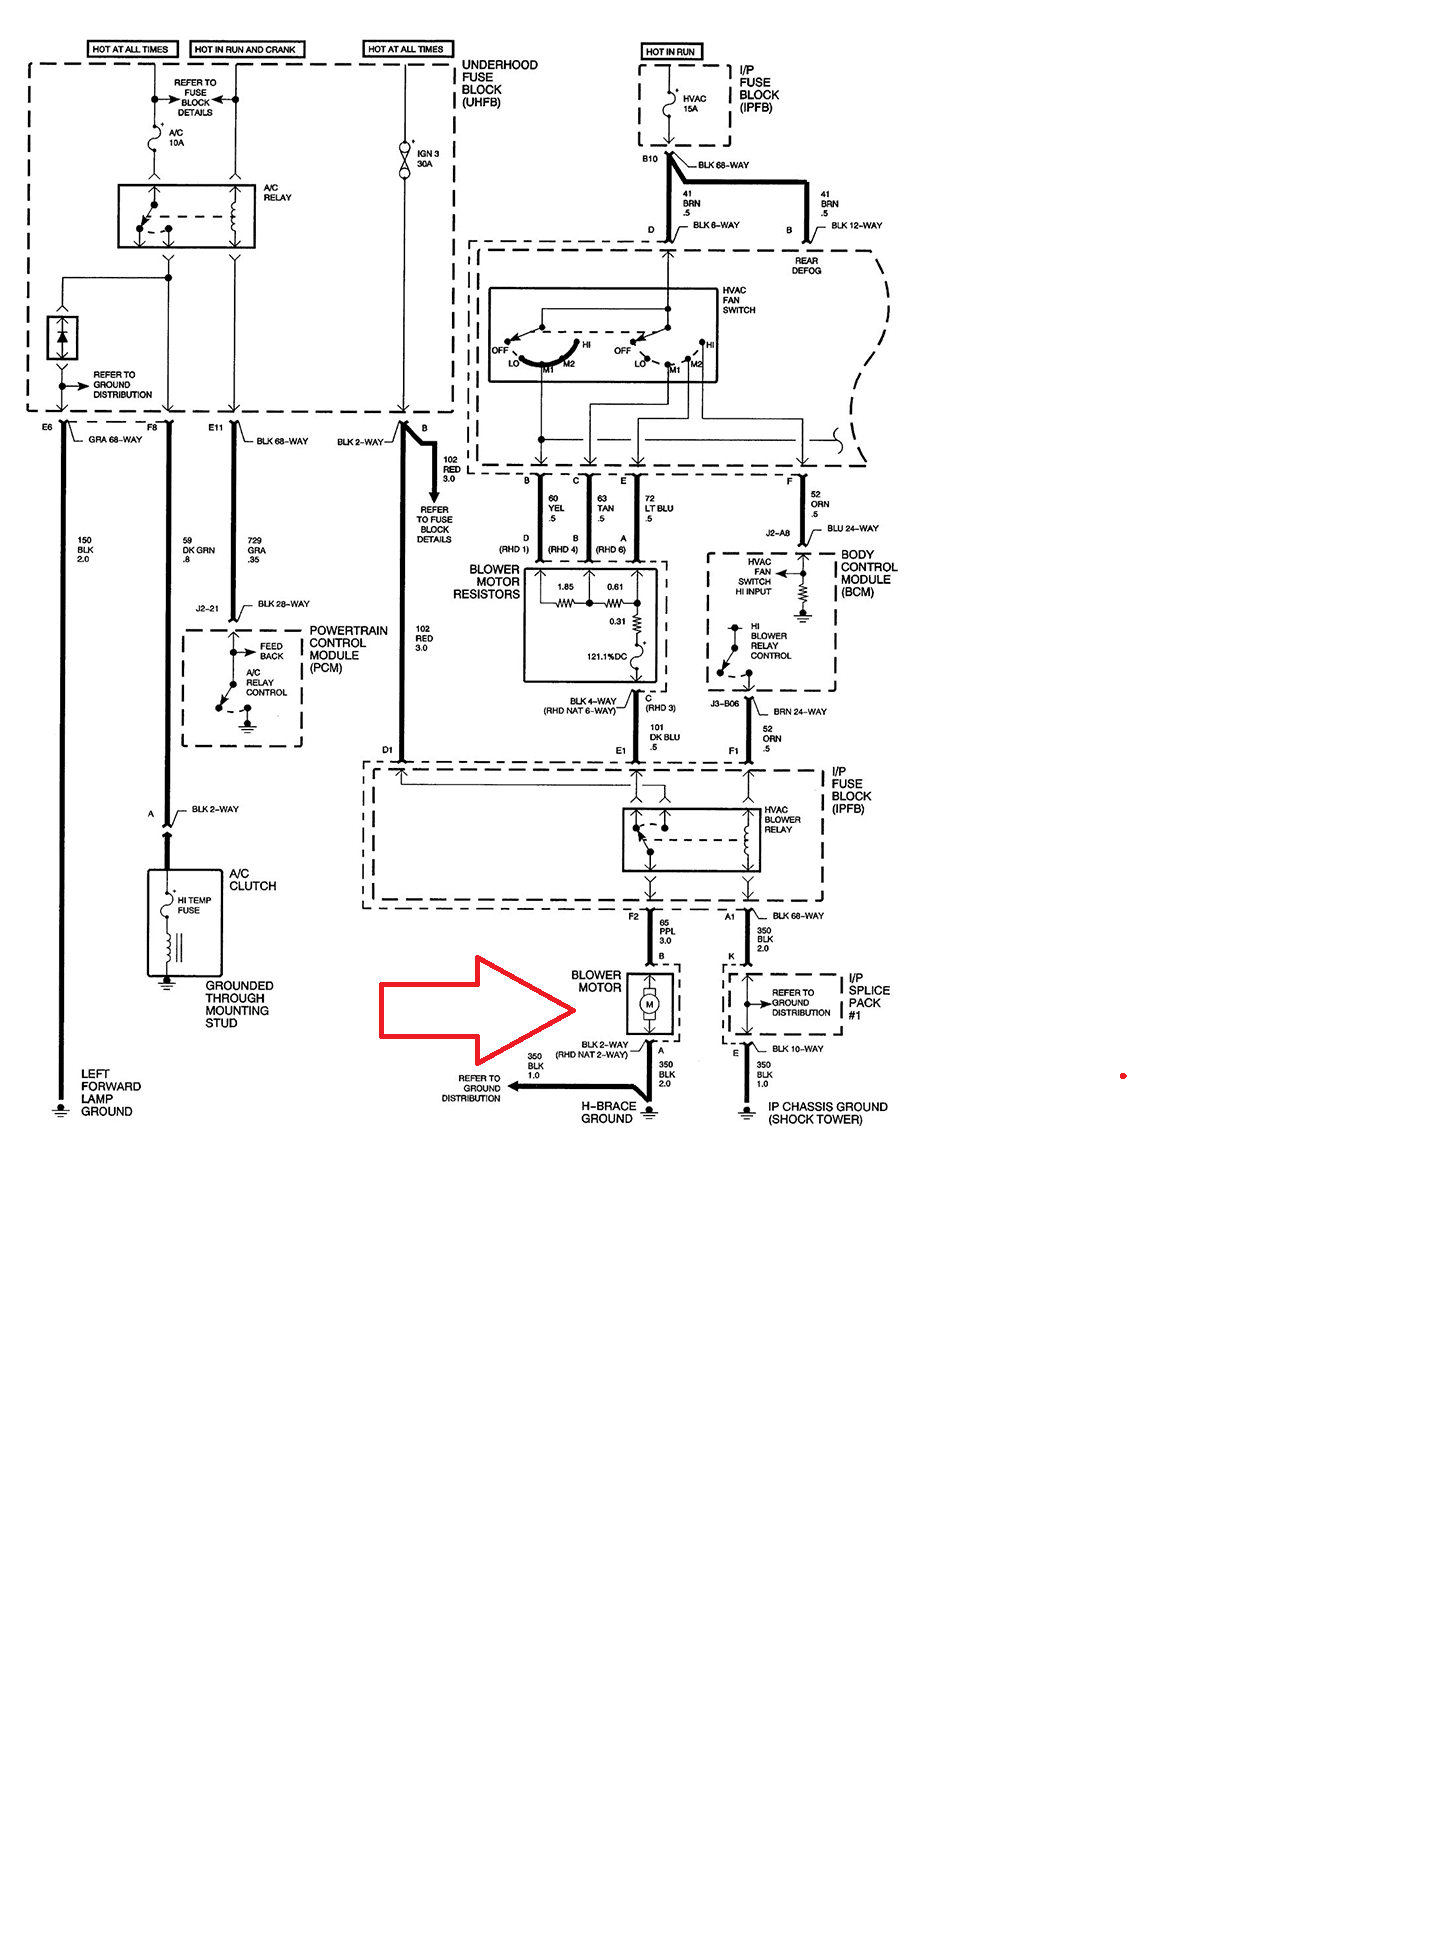 Saturn Sc2 Fuses furthermore 52b68 Cooling Fan Will Not Engage When A C Turned likewise 1996 Saturn Sc2 Fuse Box Diagram also 1997 Saturn Sl2 Wiring together with 97 Cadillac Catera Fuse Locations. on 97 saturn sc2 fuse box diagram